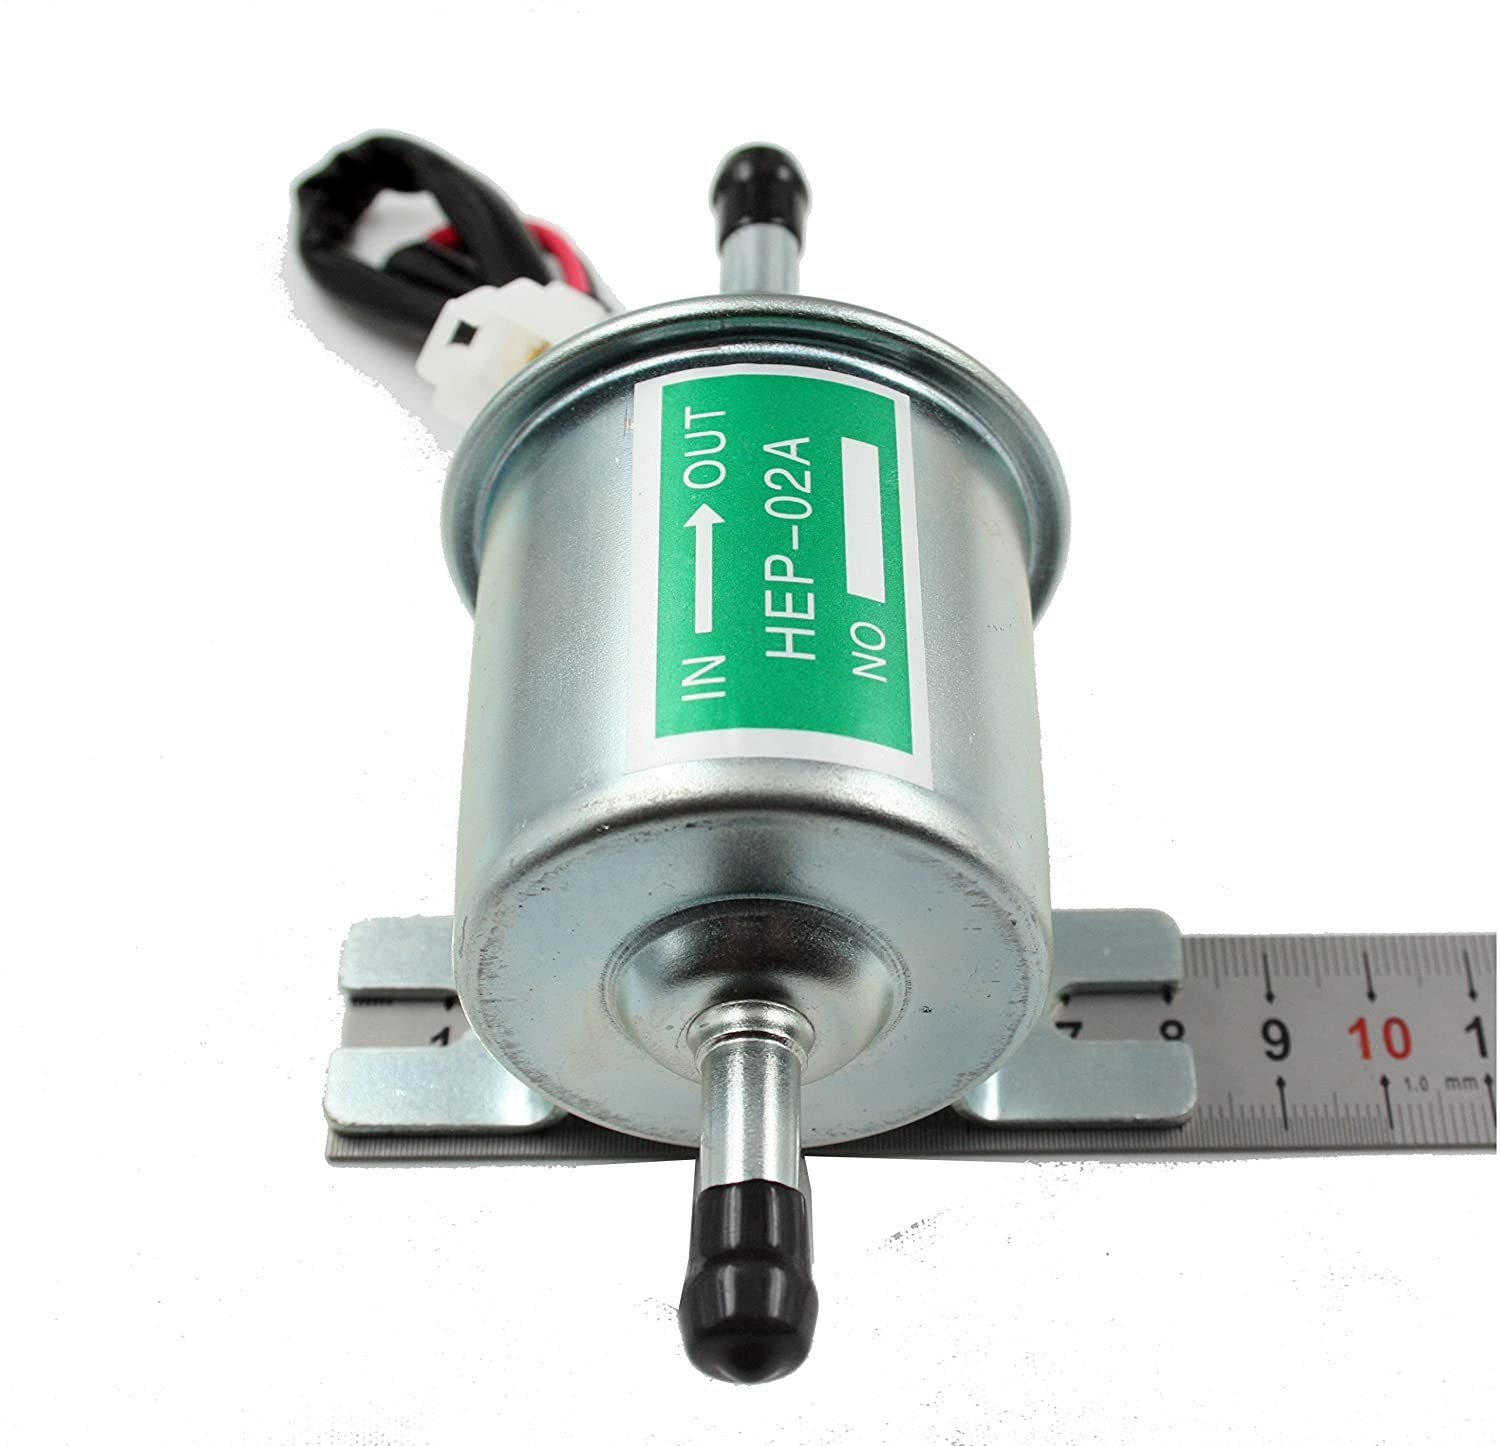 Xtremeamazing Universal Electric Fuel Pump For Sportsman 500 Line Diagram Also Honda Cb750 Wiring Motorcycle Low Pressure 12v Carburated Fp 02 Atv Automotive